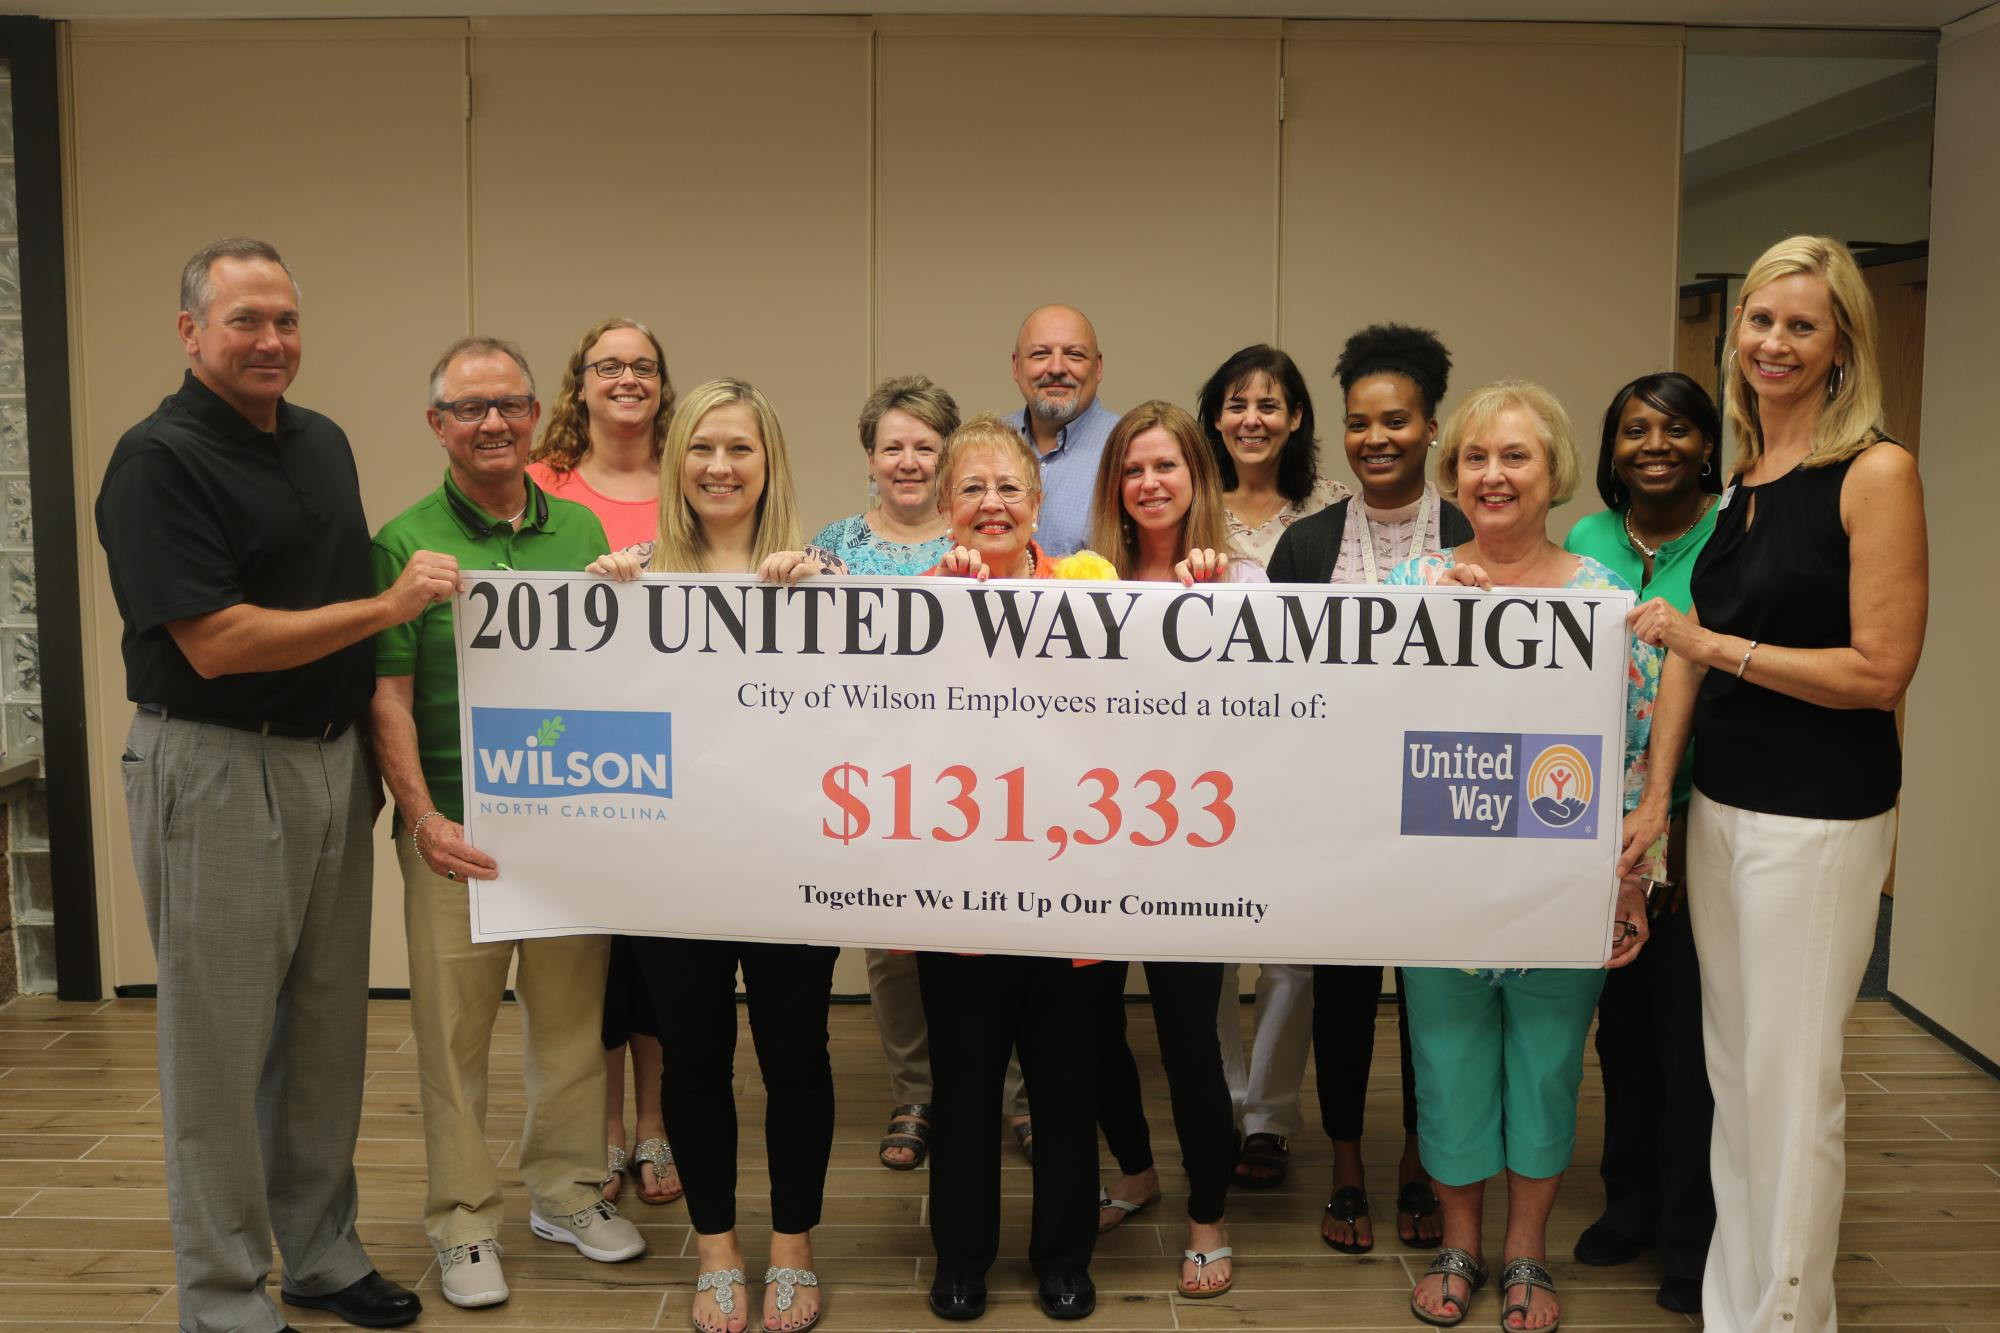 2019 United Way results